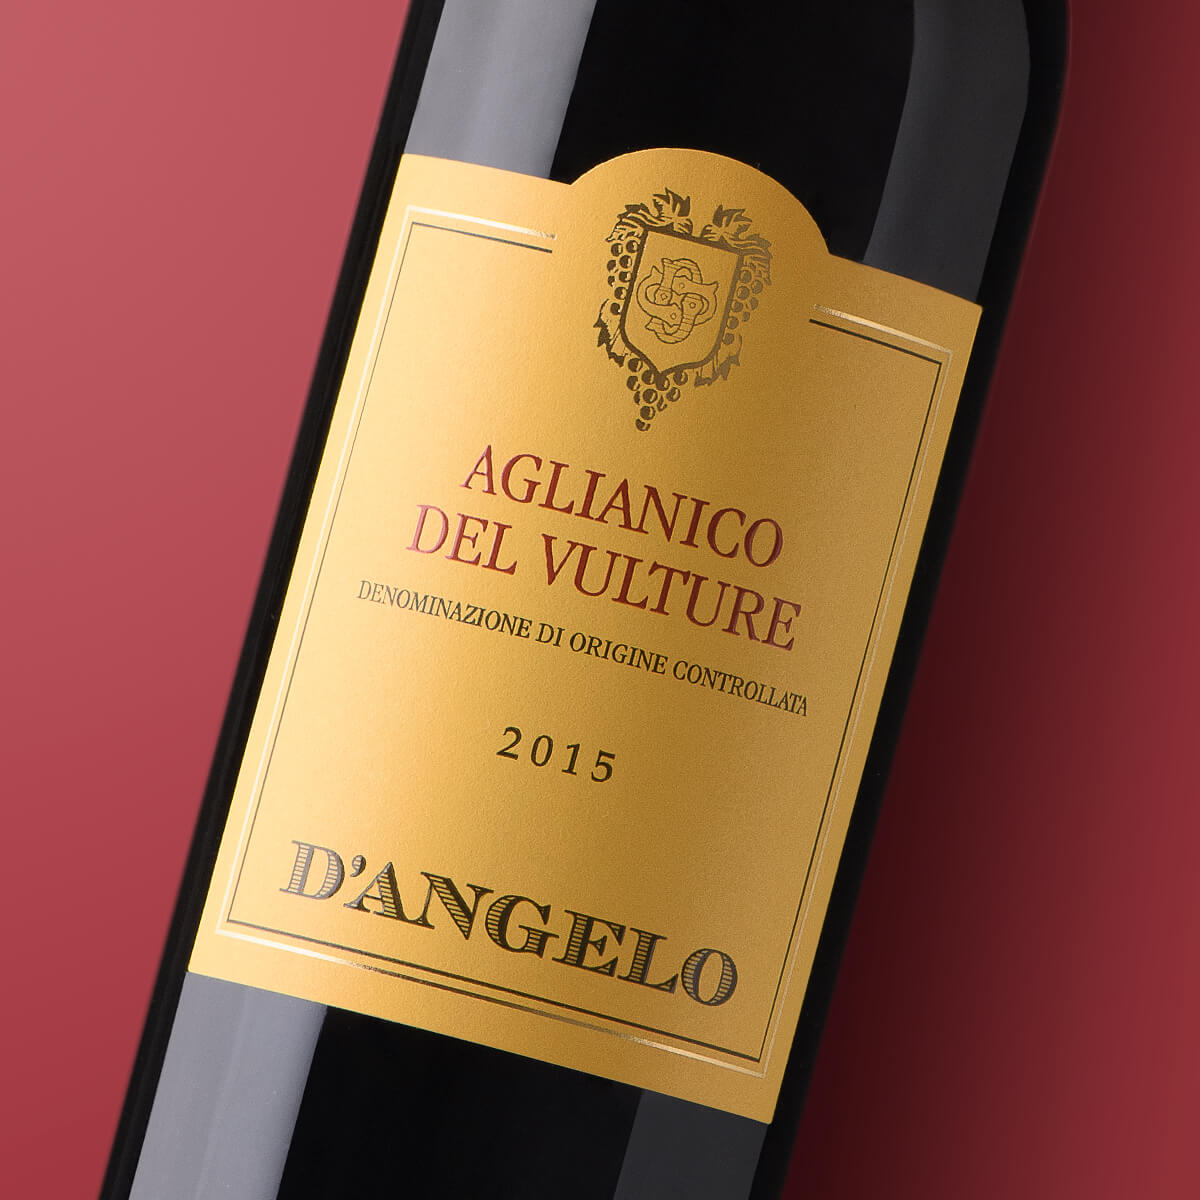 aglianico del vulture dangelo